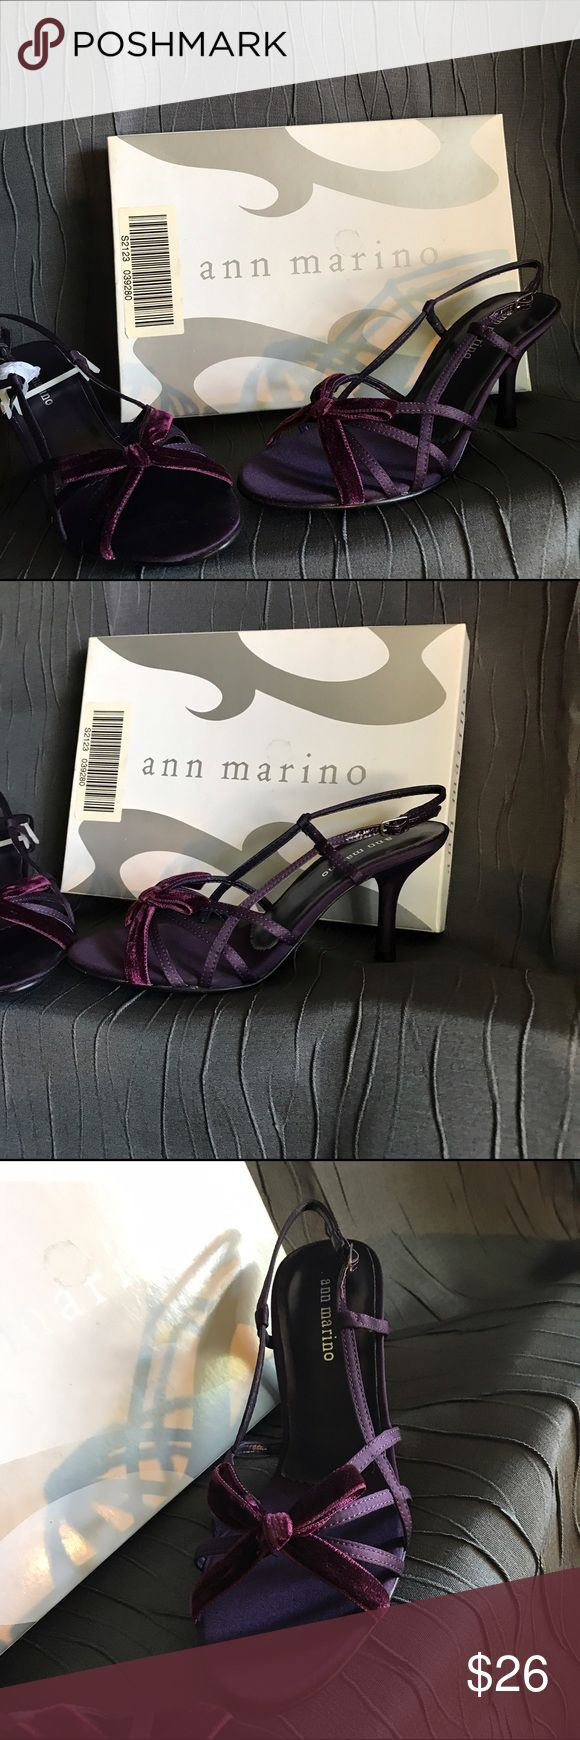 Deep Purple Strappy Heels! NIB, size 6, Ann Marino deep purple/plum strappy heels each adorned with a purple velvet bow, upper is made of fabric & lower portion is leather. Very nice!! Ann Marino Shoes Heels